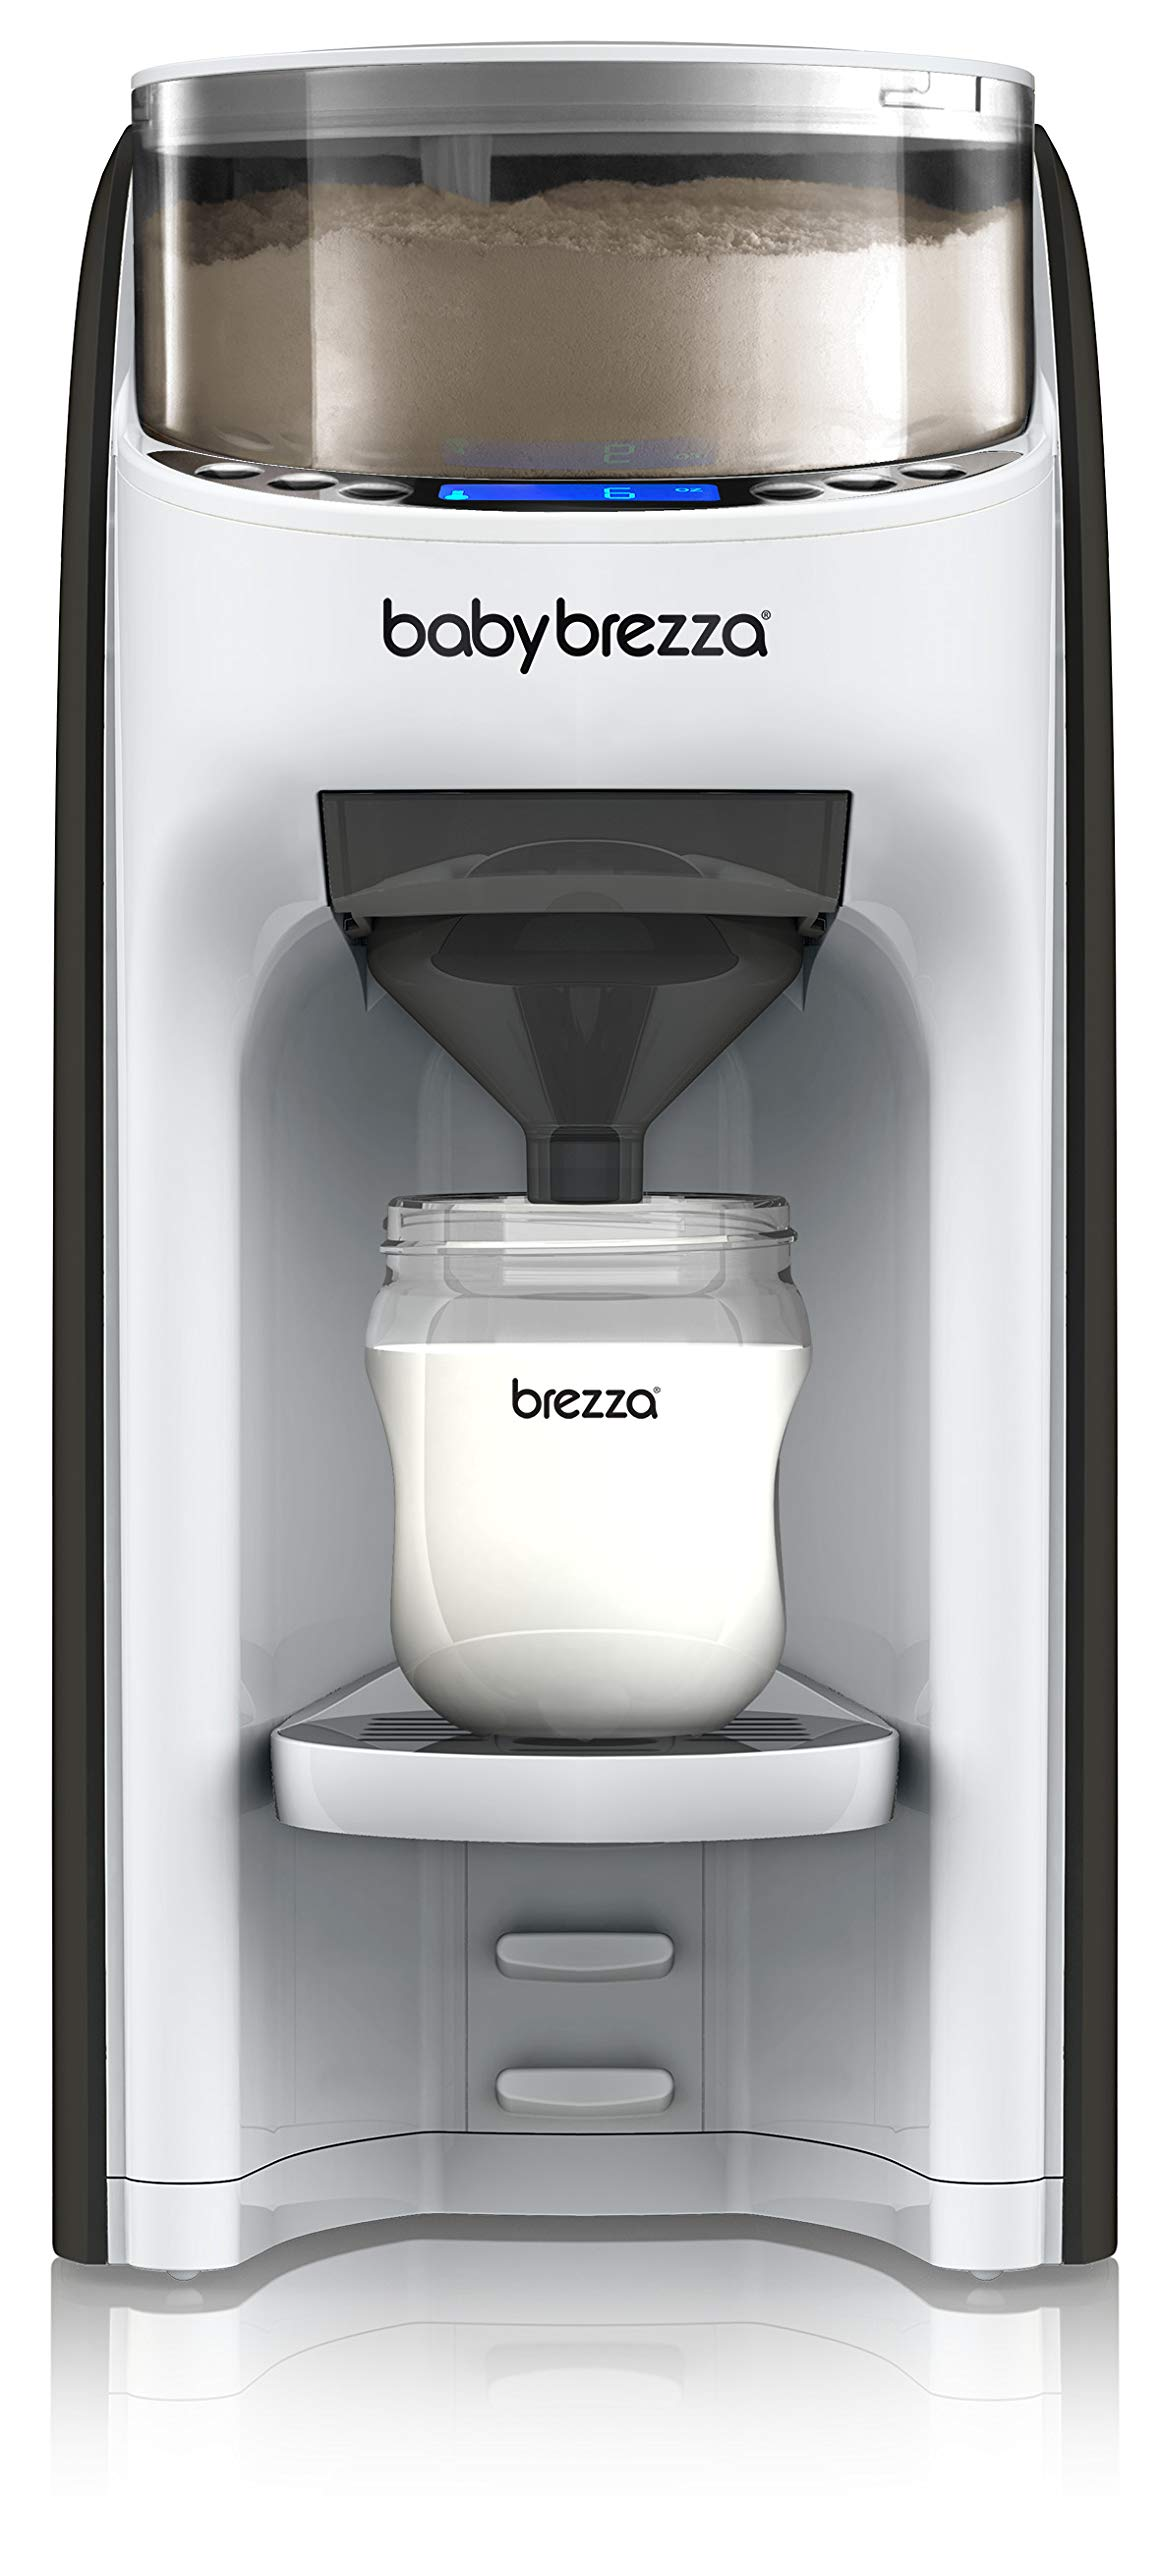 New and Improved Baby Brezza Formula Pro Advanced Formula Dispenser Machine - Automatically Mix a Warm Formula Bottle Instantly - Easily Make Bottle with Automatic Powder Blending by Baby Brezza